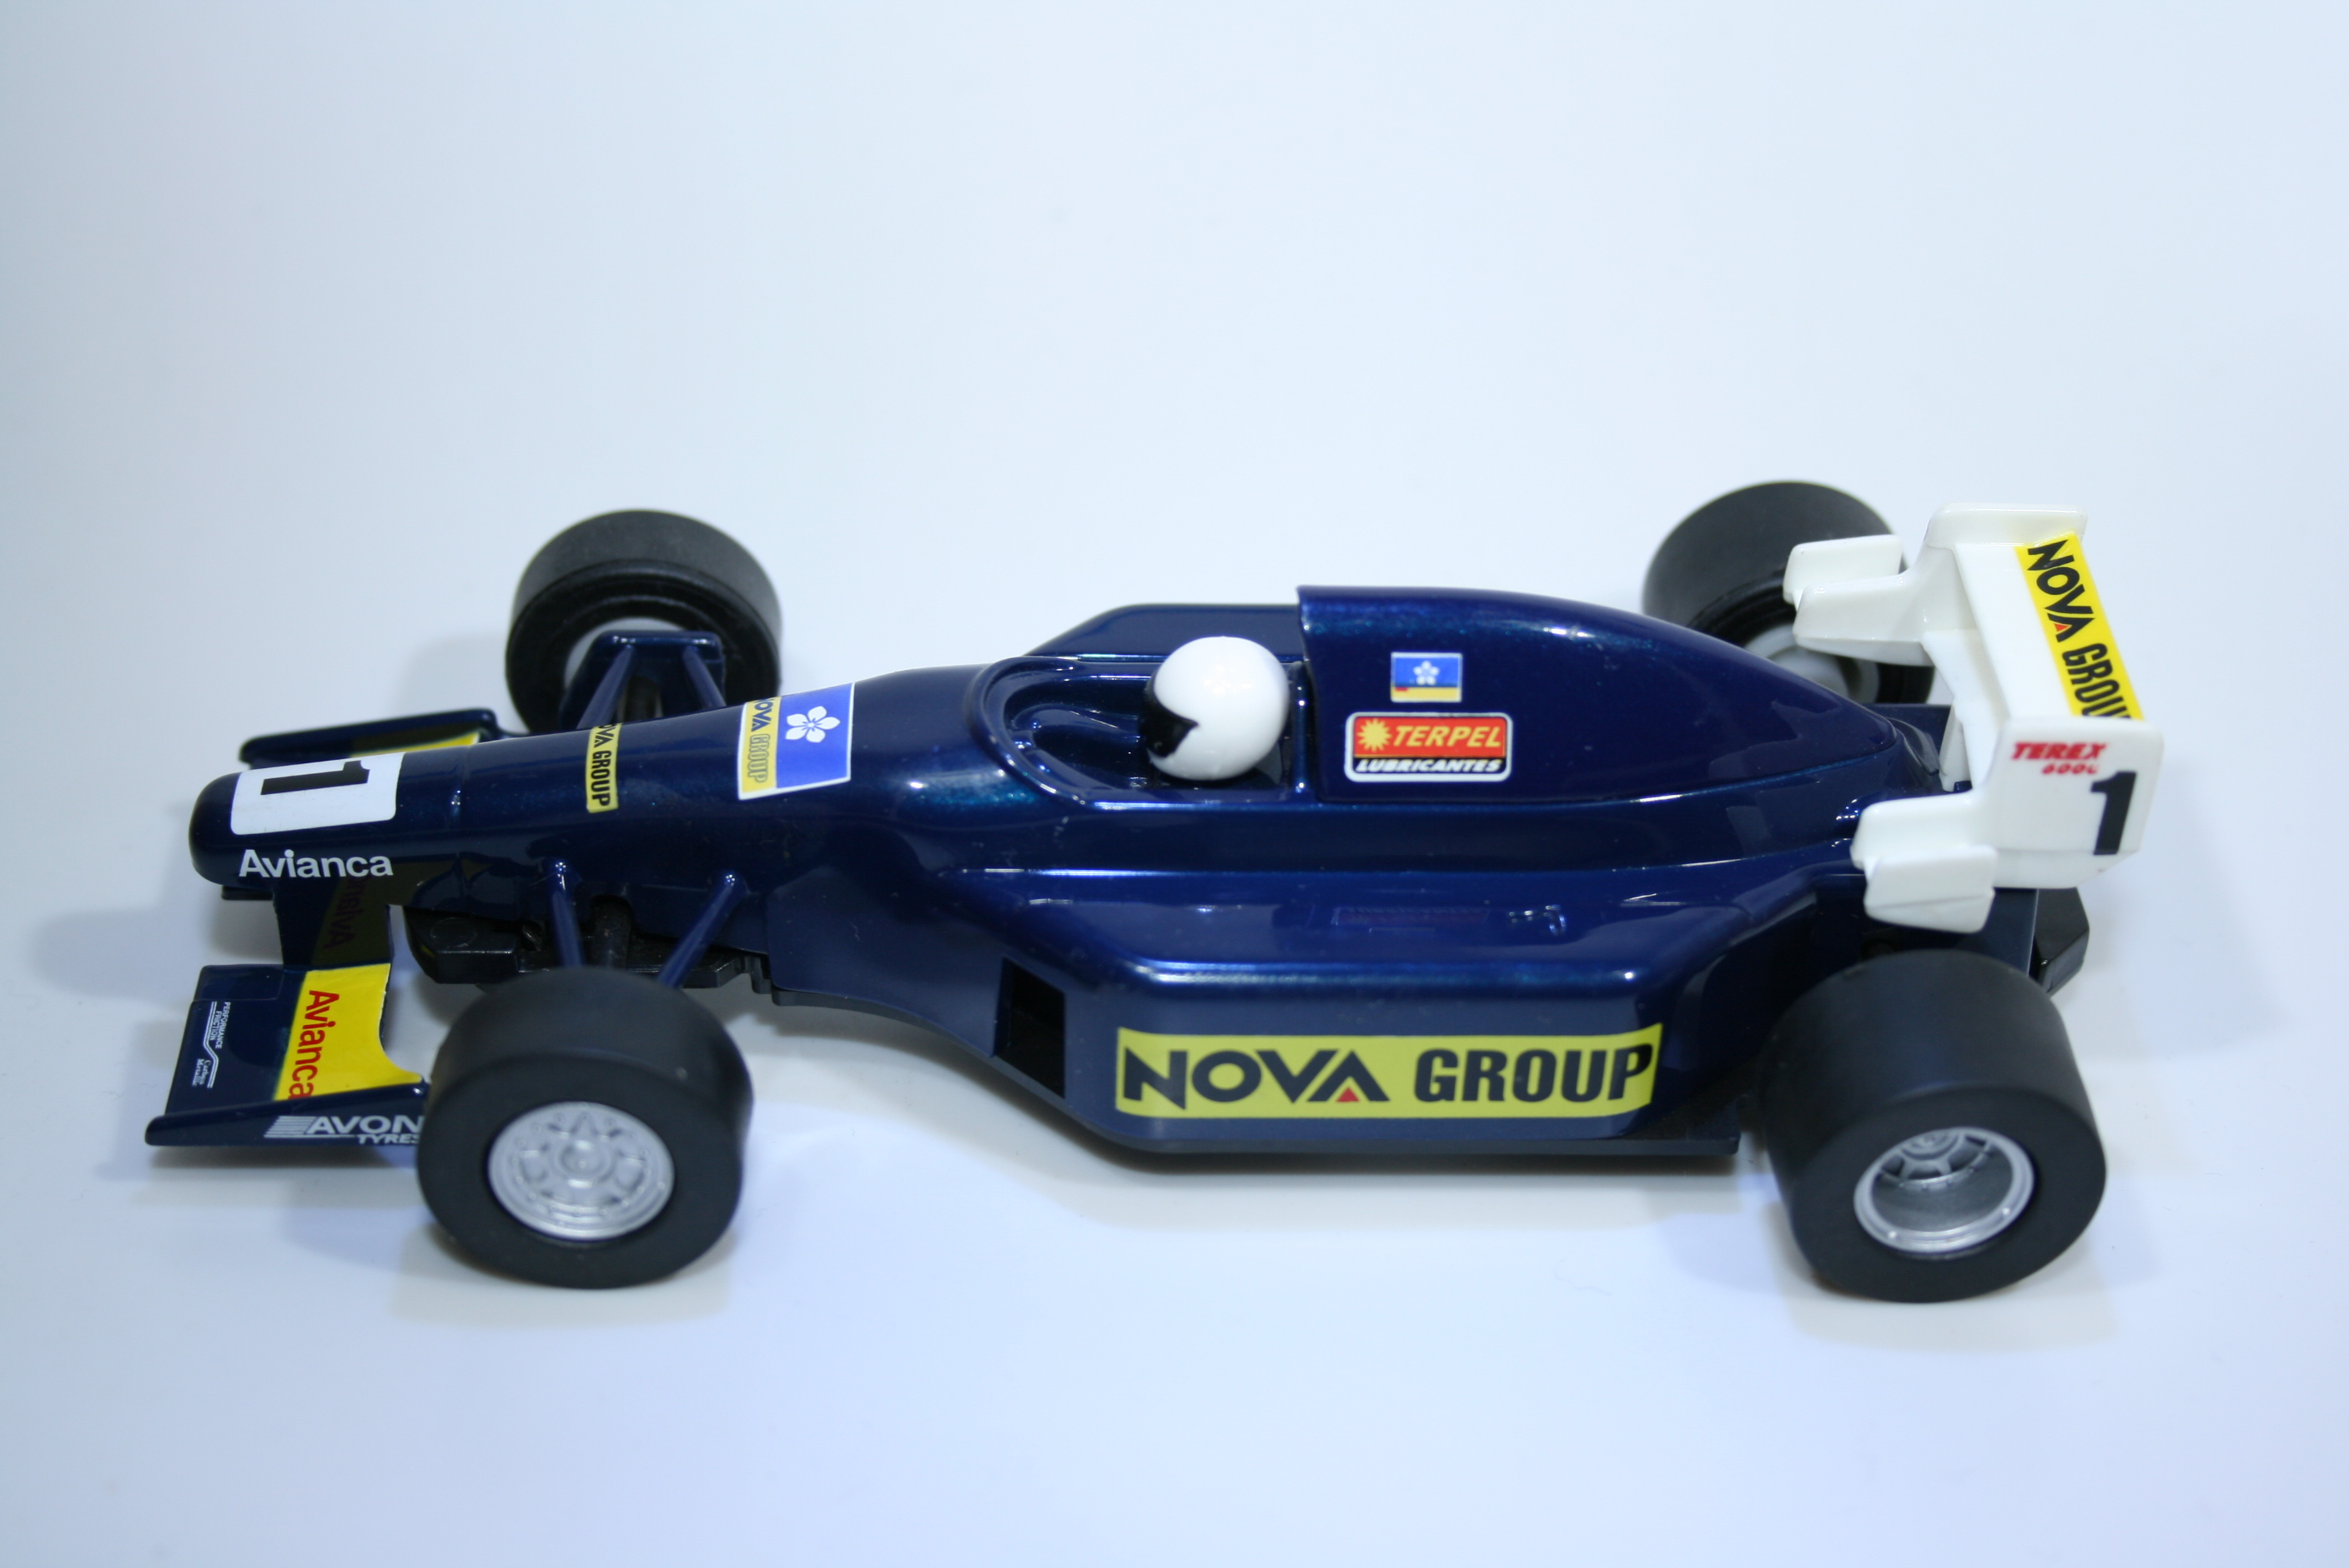 219 Scalextric Team Car Nova Group C2459 2002-2003